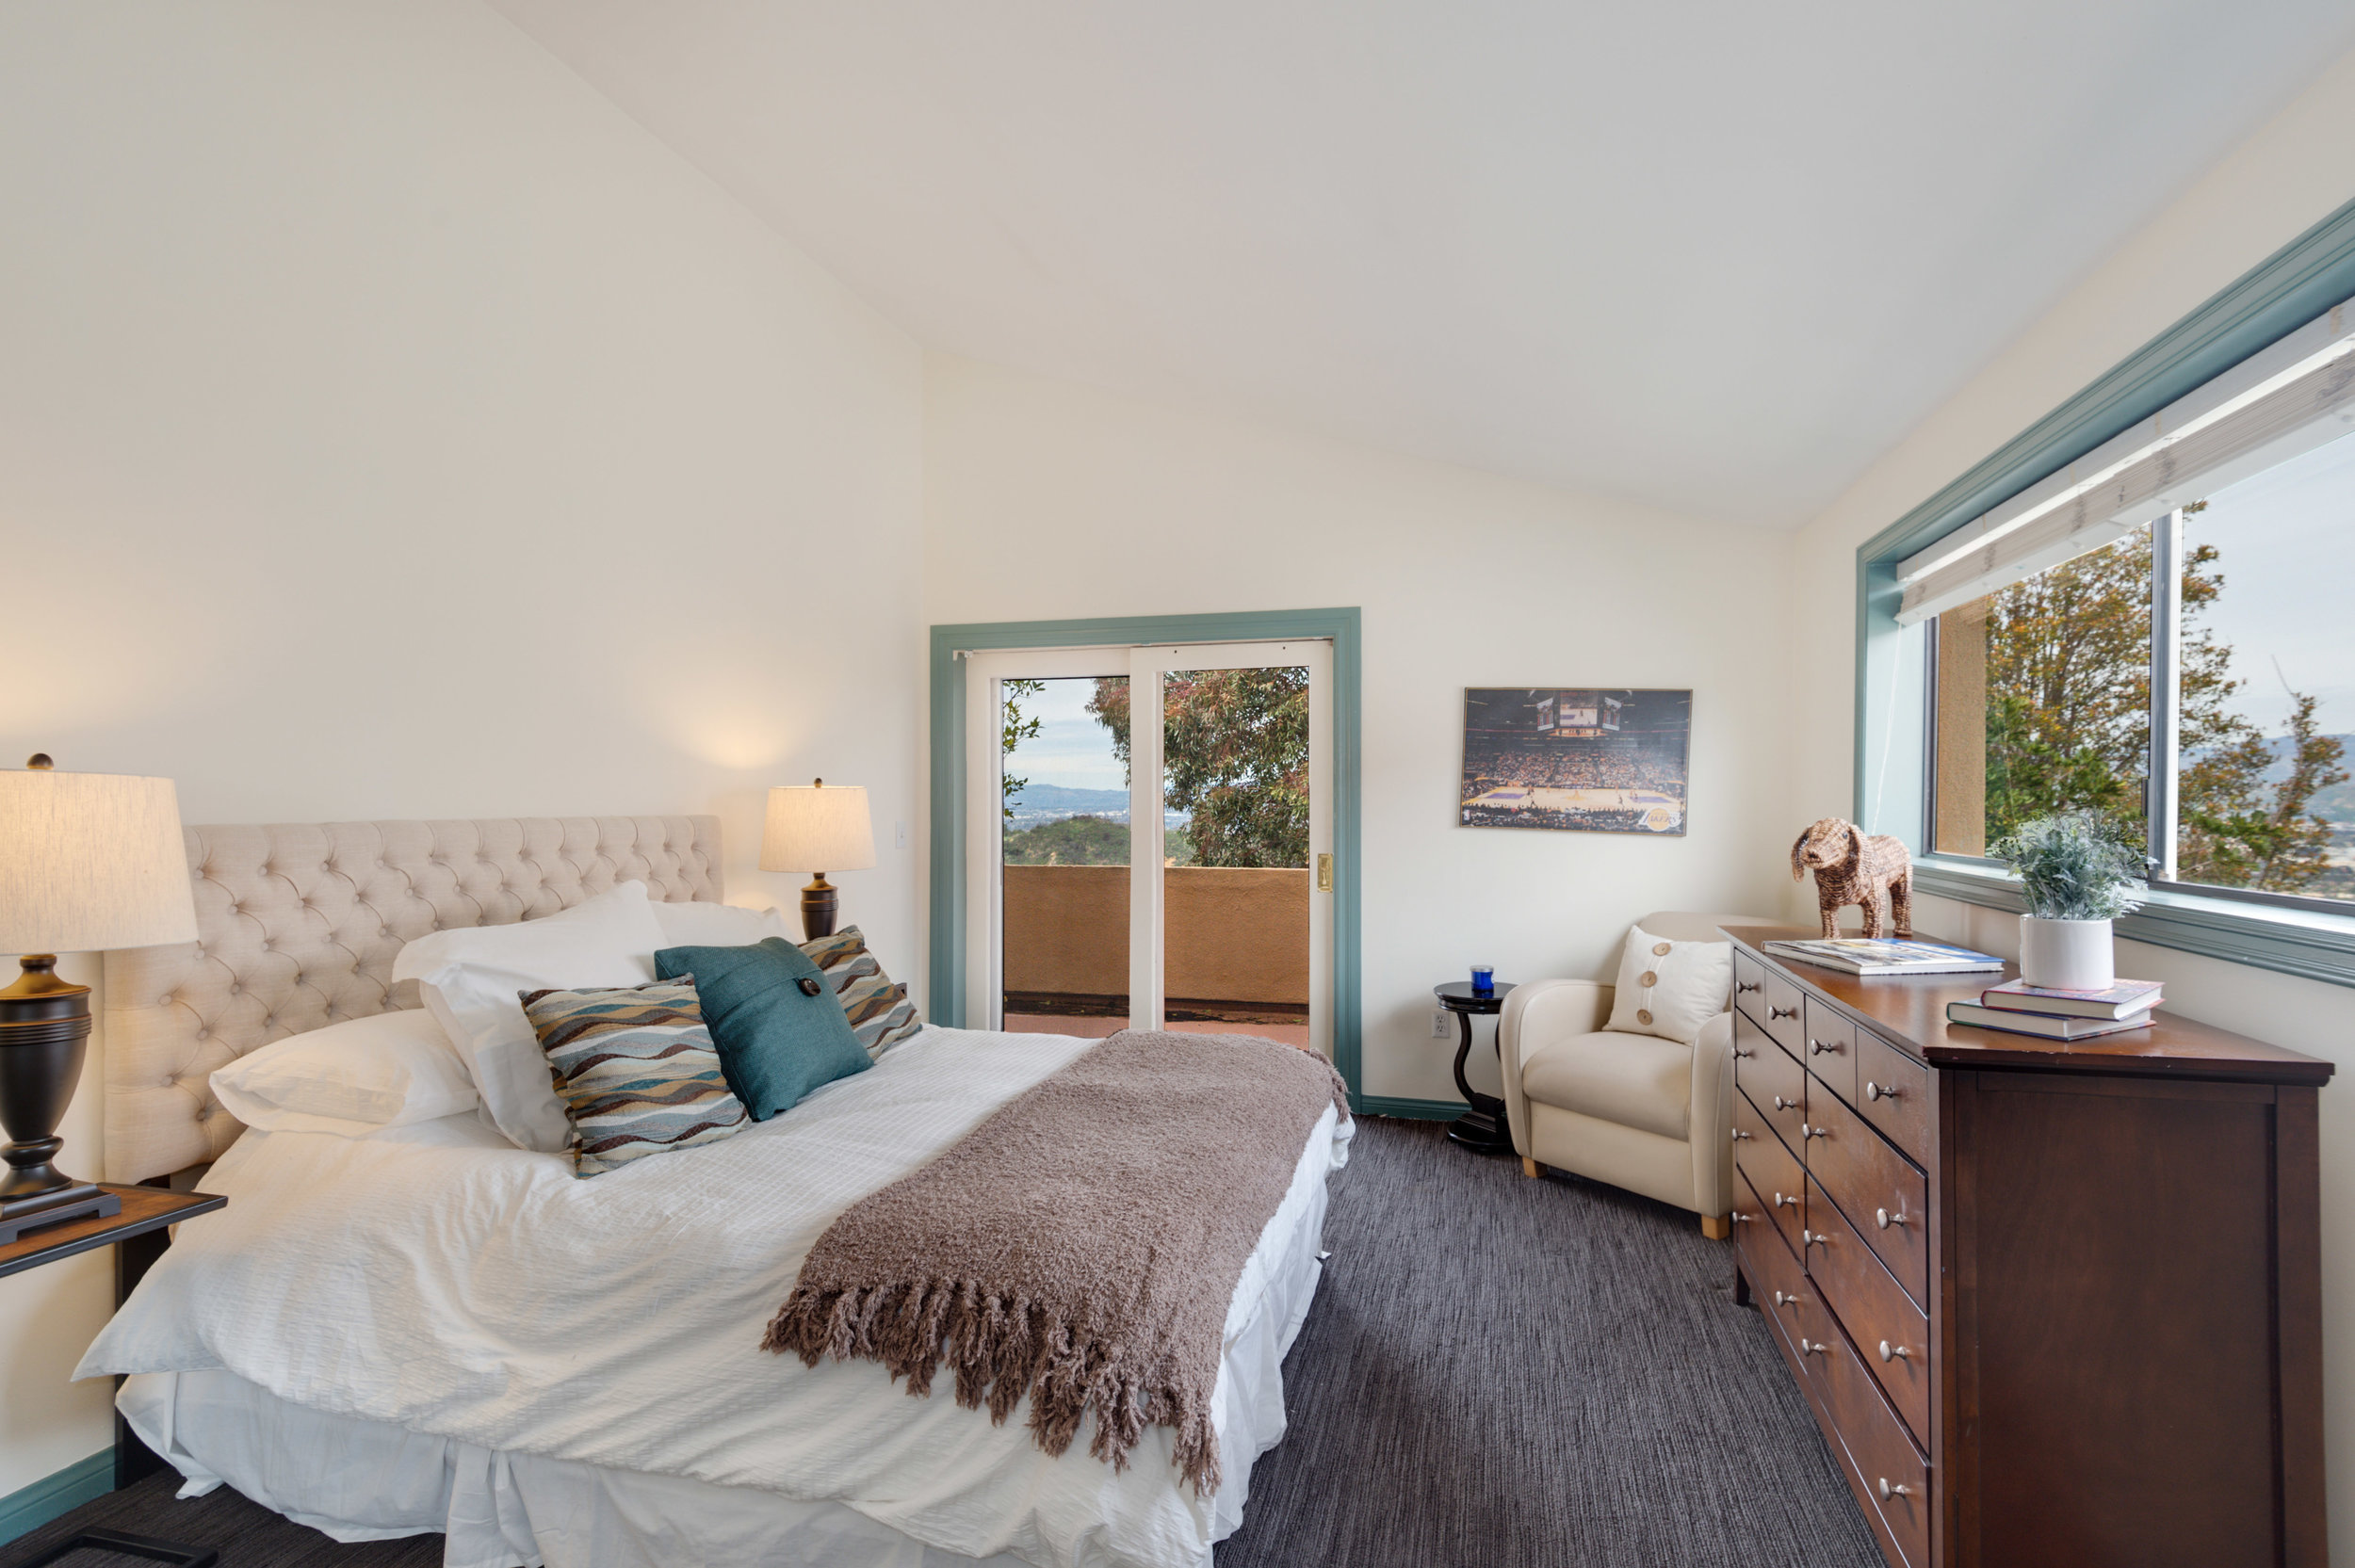 019 Bedroom 12027 Talus Place Beverly Hills 90210 For Sale Lease The Malibu Life Team Luxury Real Estate.jpg